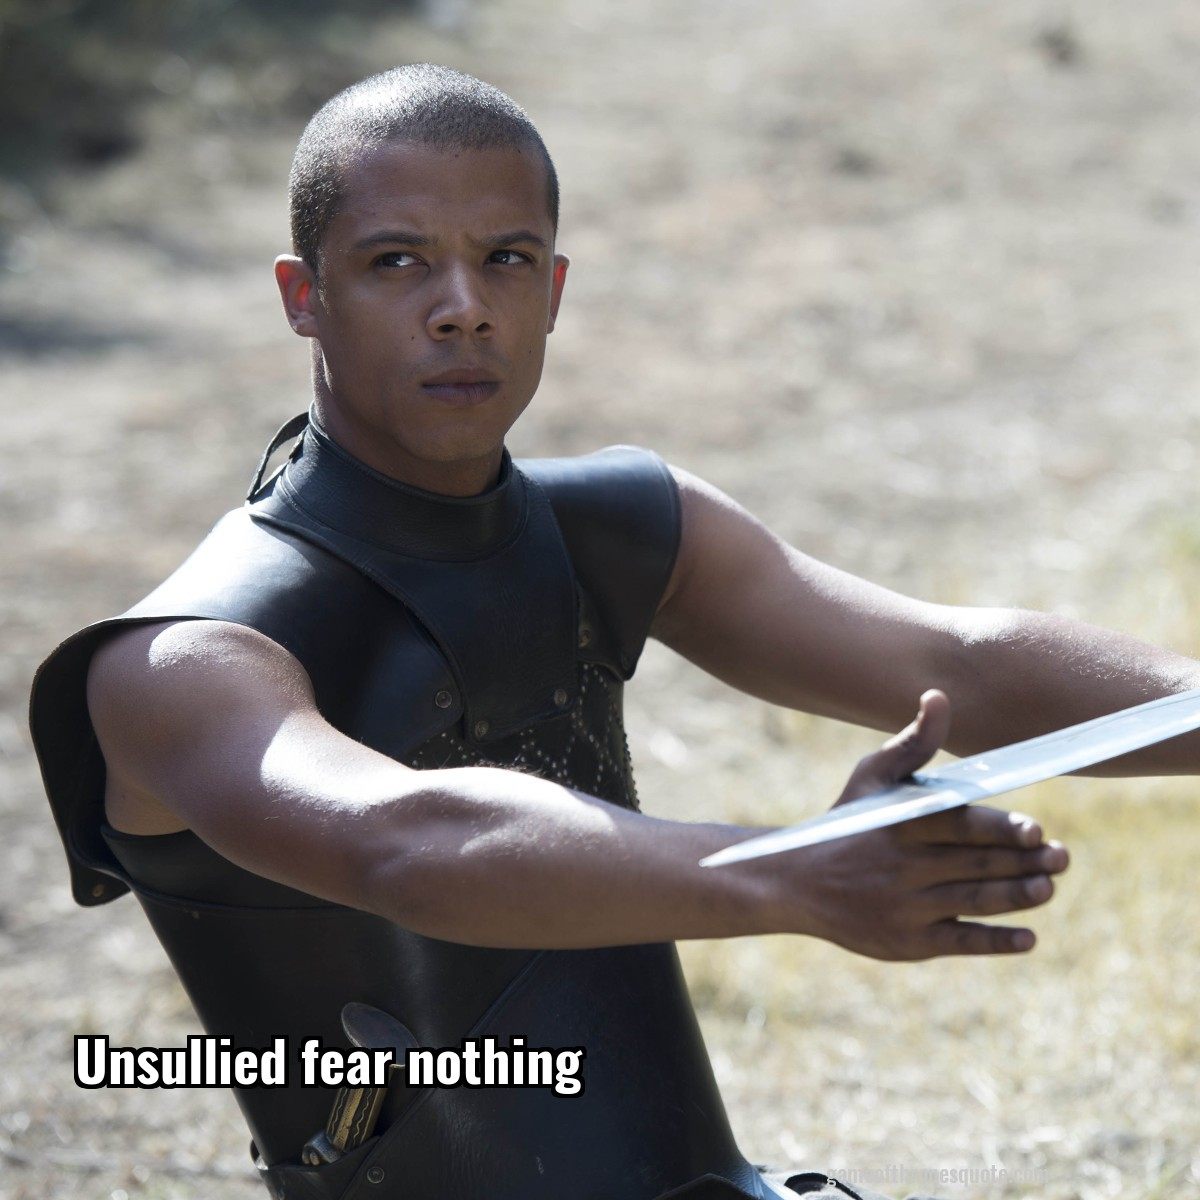 Unsullied fear nothing